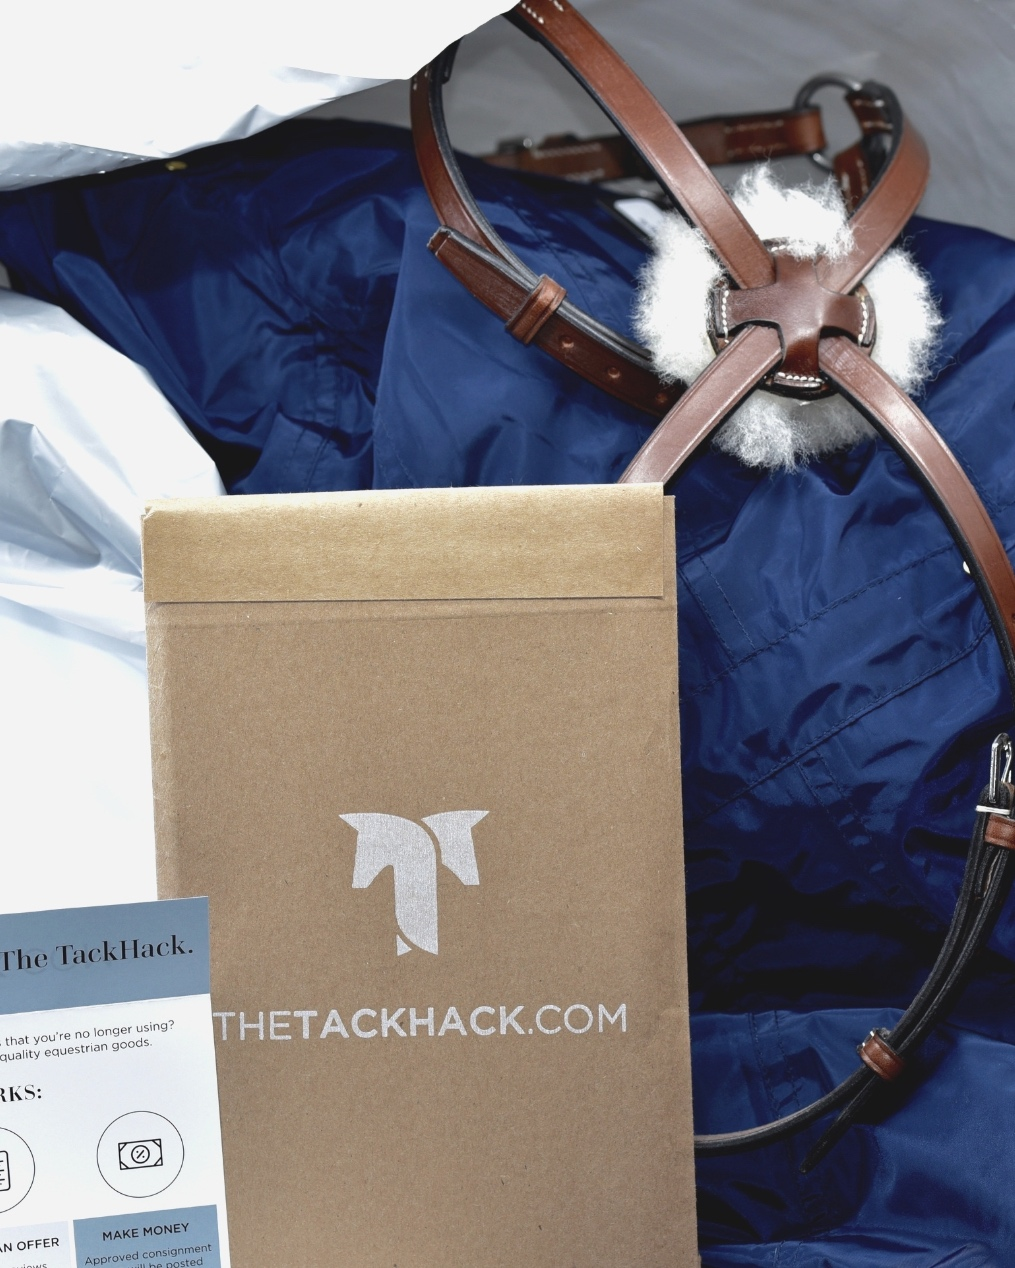 The TackHack Consignment Kit. - Aka, the kit for everything else. Our kit makes shipping your equestrian tack and apparel a breeze, and your items ship to us for free. Request your free kit here and receive everything you need to clean out your tack box and make hay.